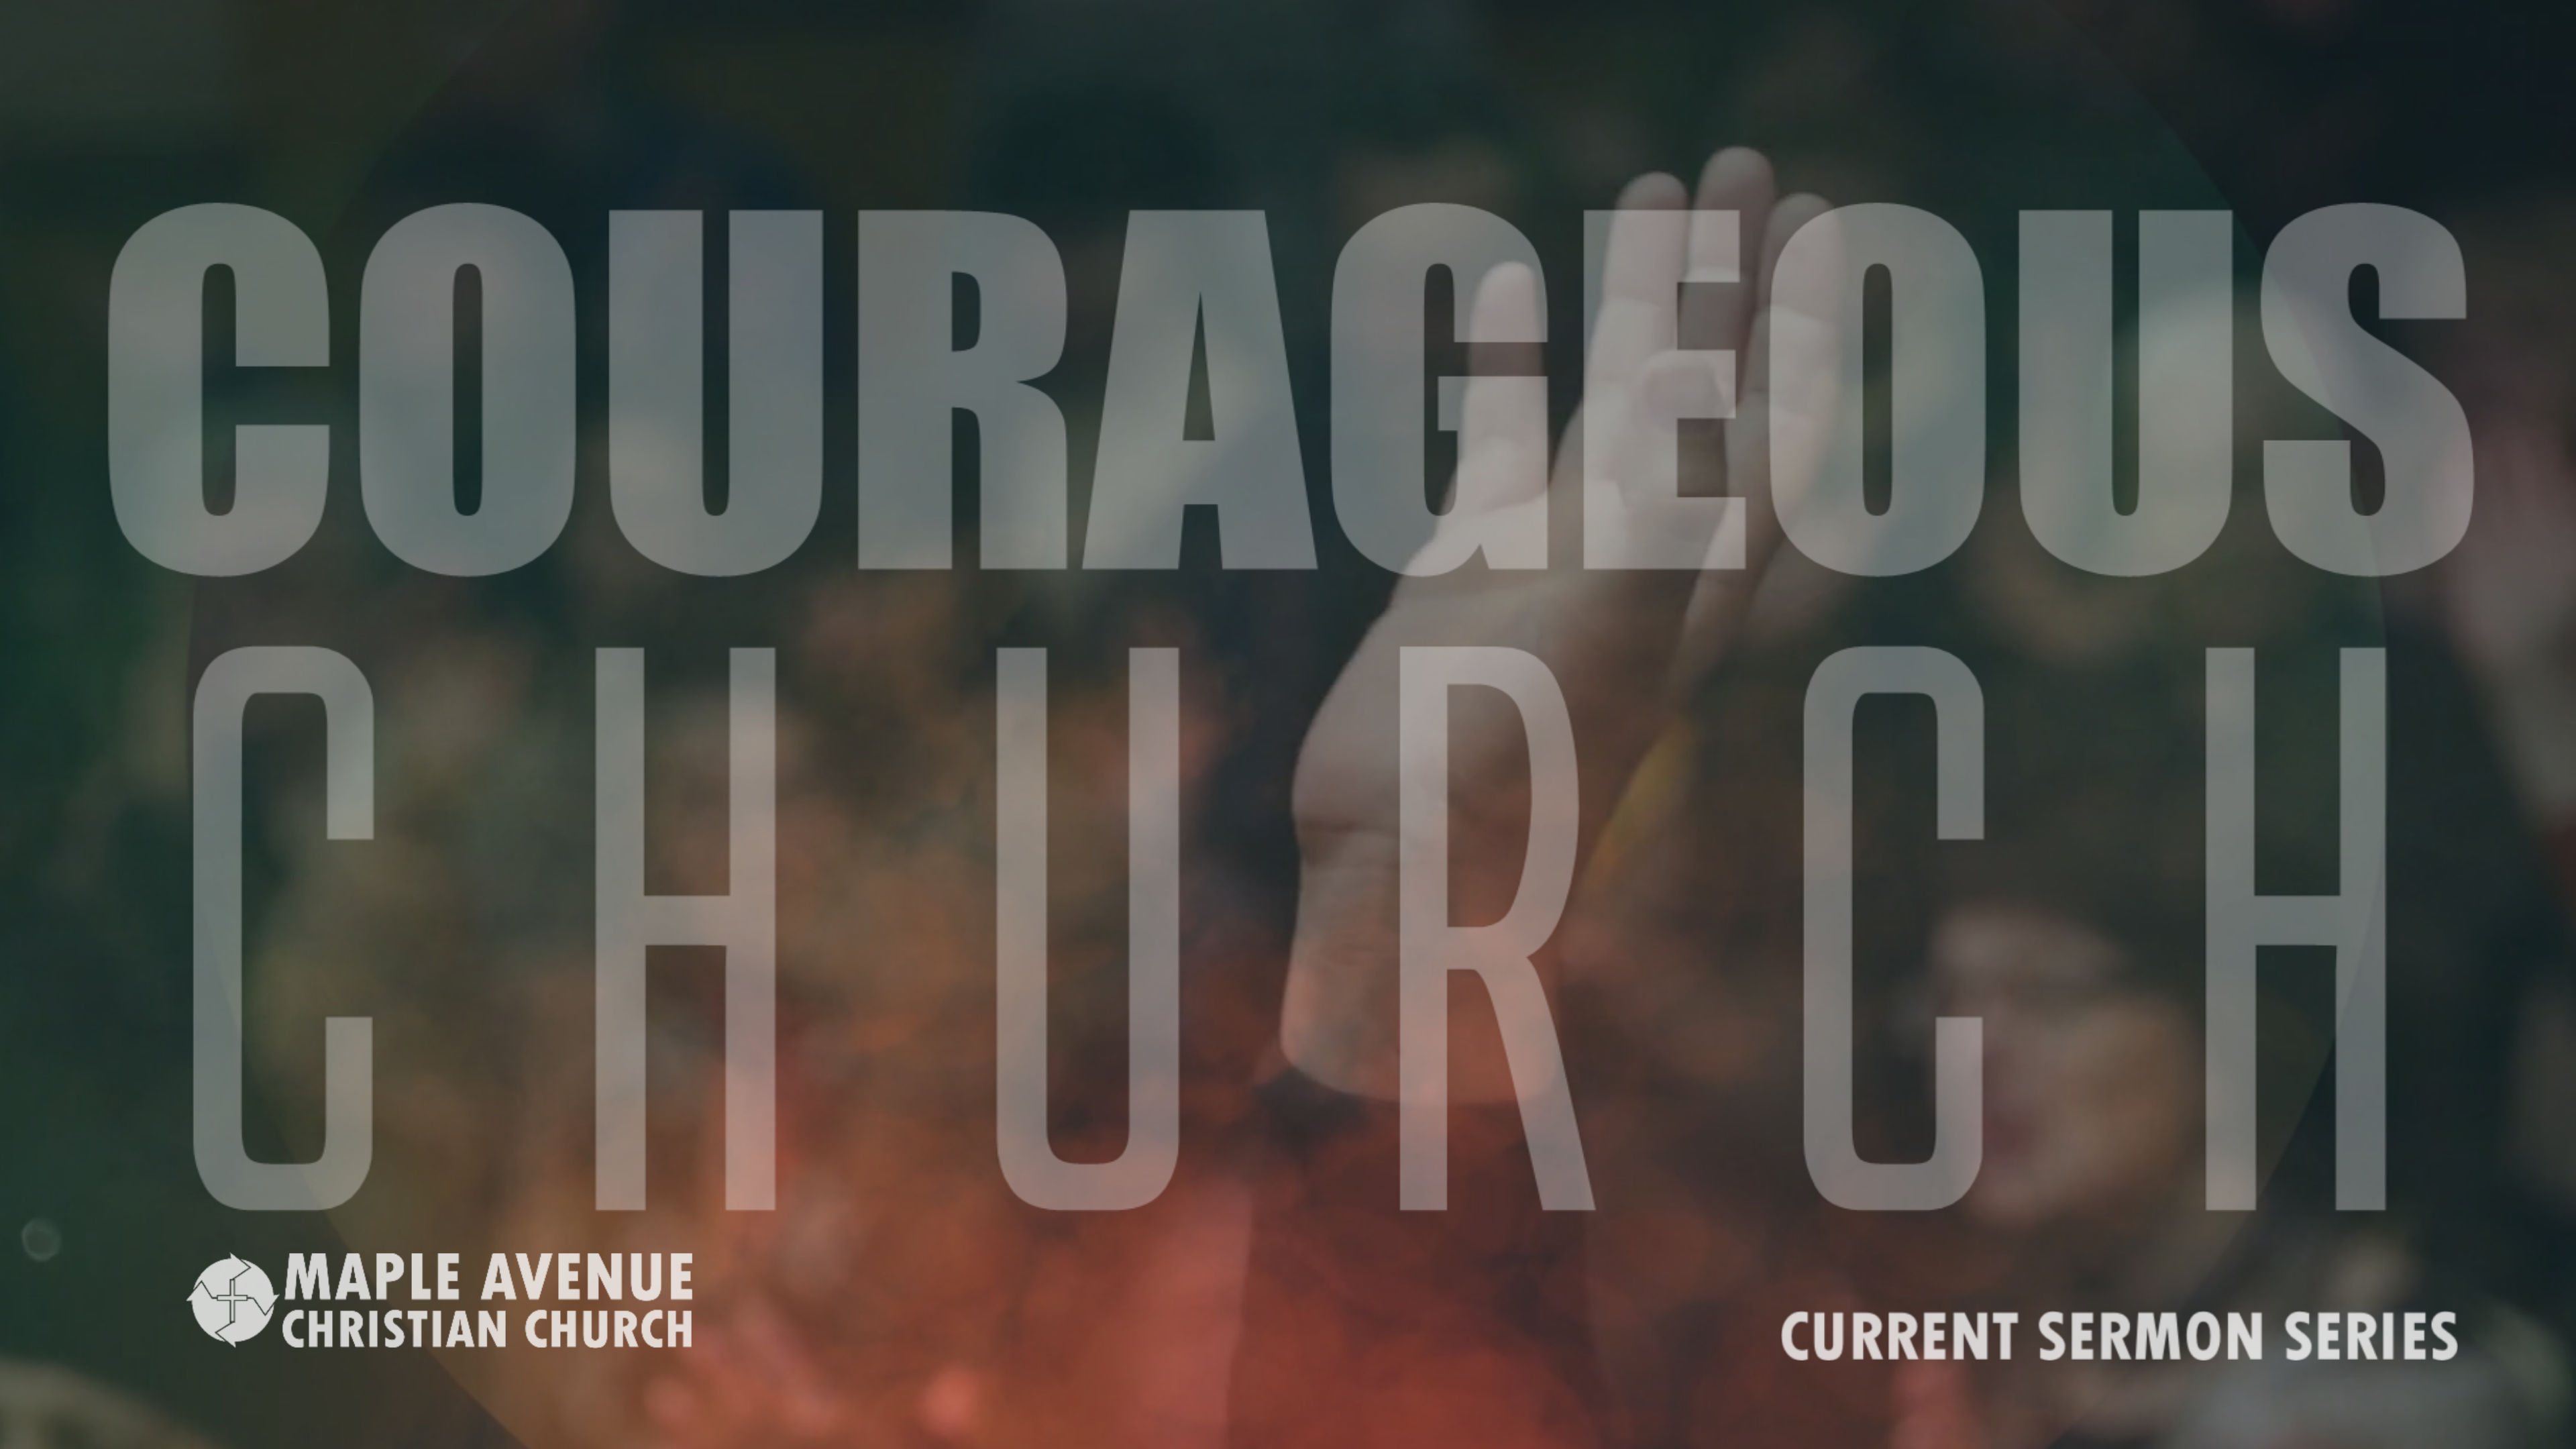 Courageous Church:  Fellowship